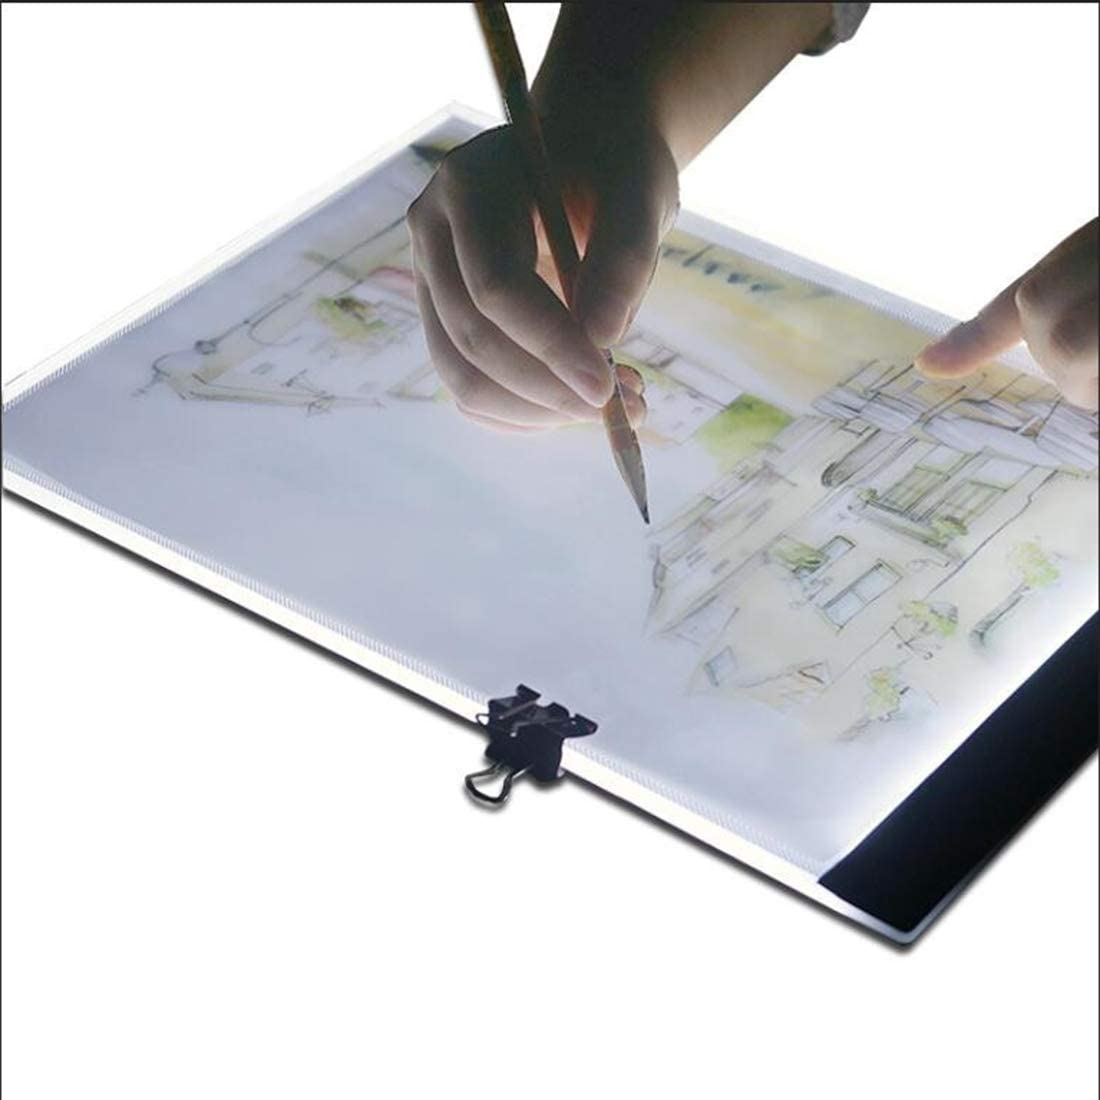 Writing Drawing Tablets Ultra-Thin A4 Size Portable USB LED Artcraft Tracing Light Box Copy Board for Artists Drawing Sketching Animation and X-ray Viewing